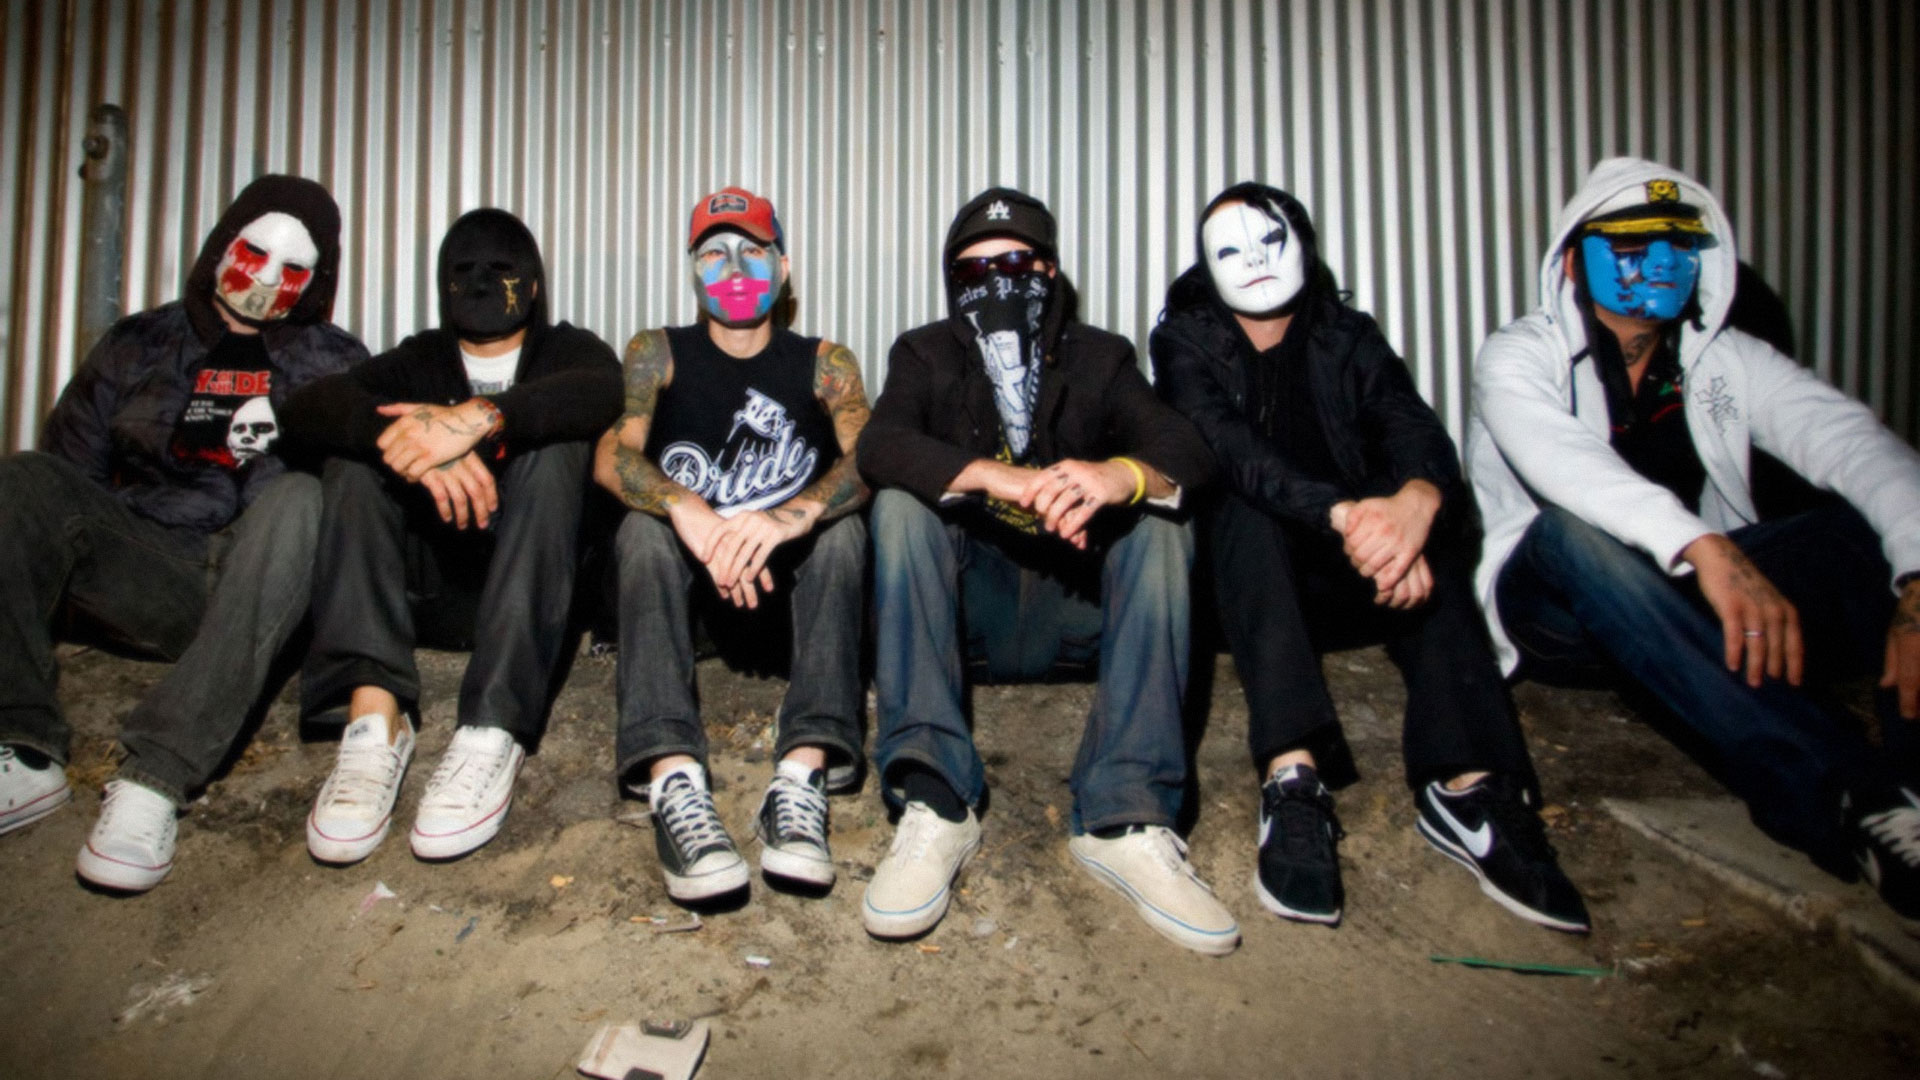 Hollywood Undead Full HD Wallpaper And Background Image